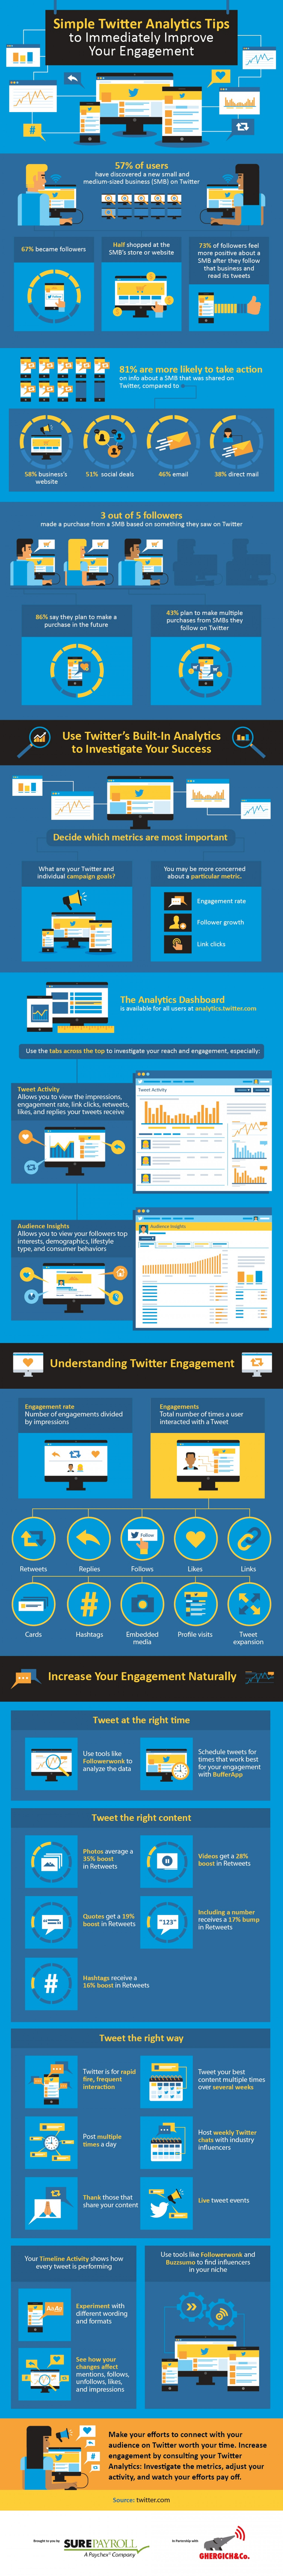 Simple Twitter Analytics Tips to Immediately Improve Your Engagement Infographic